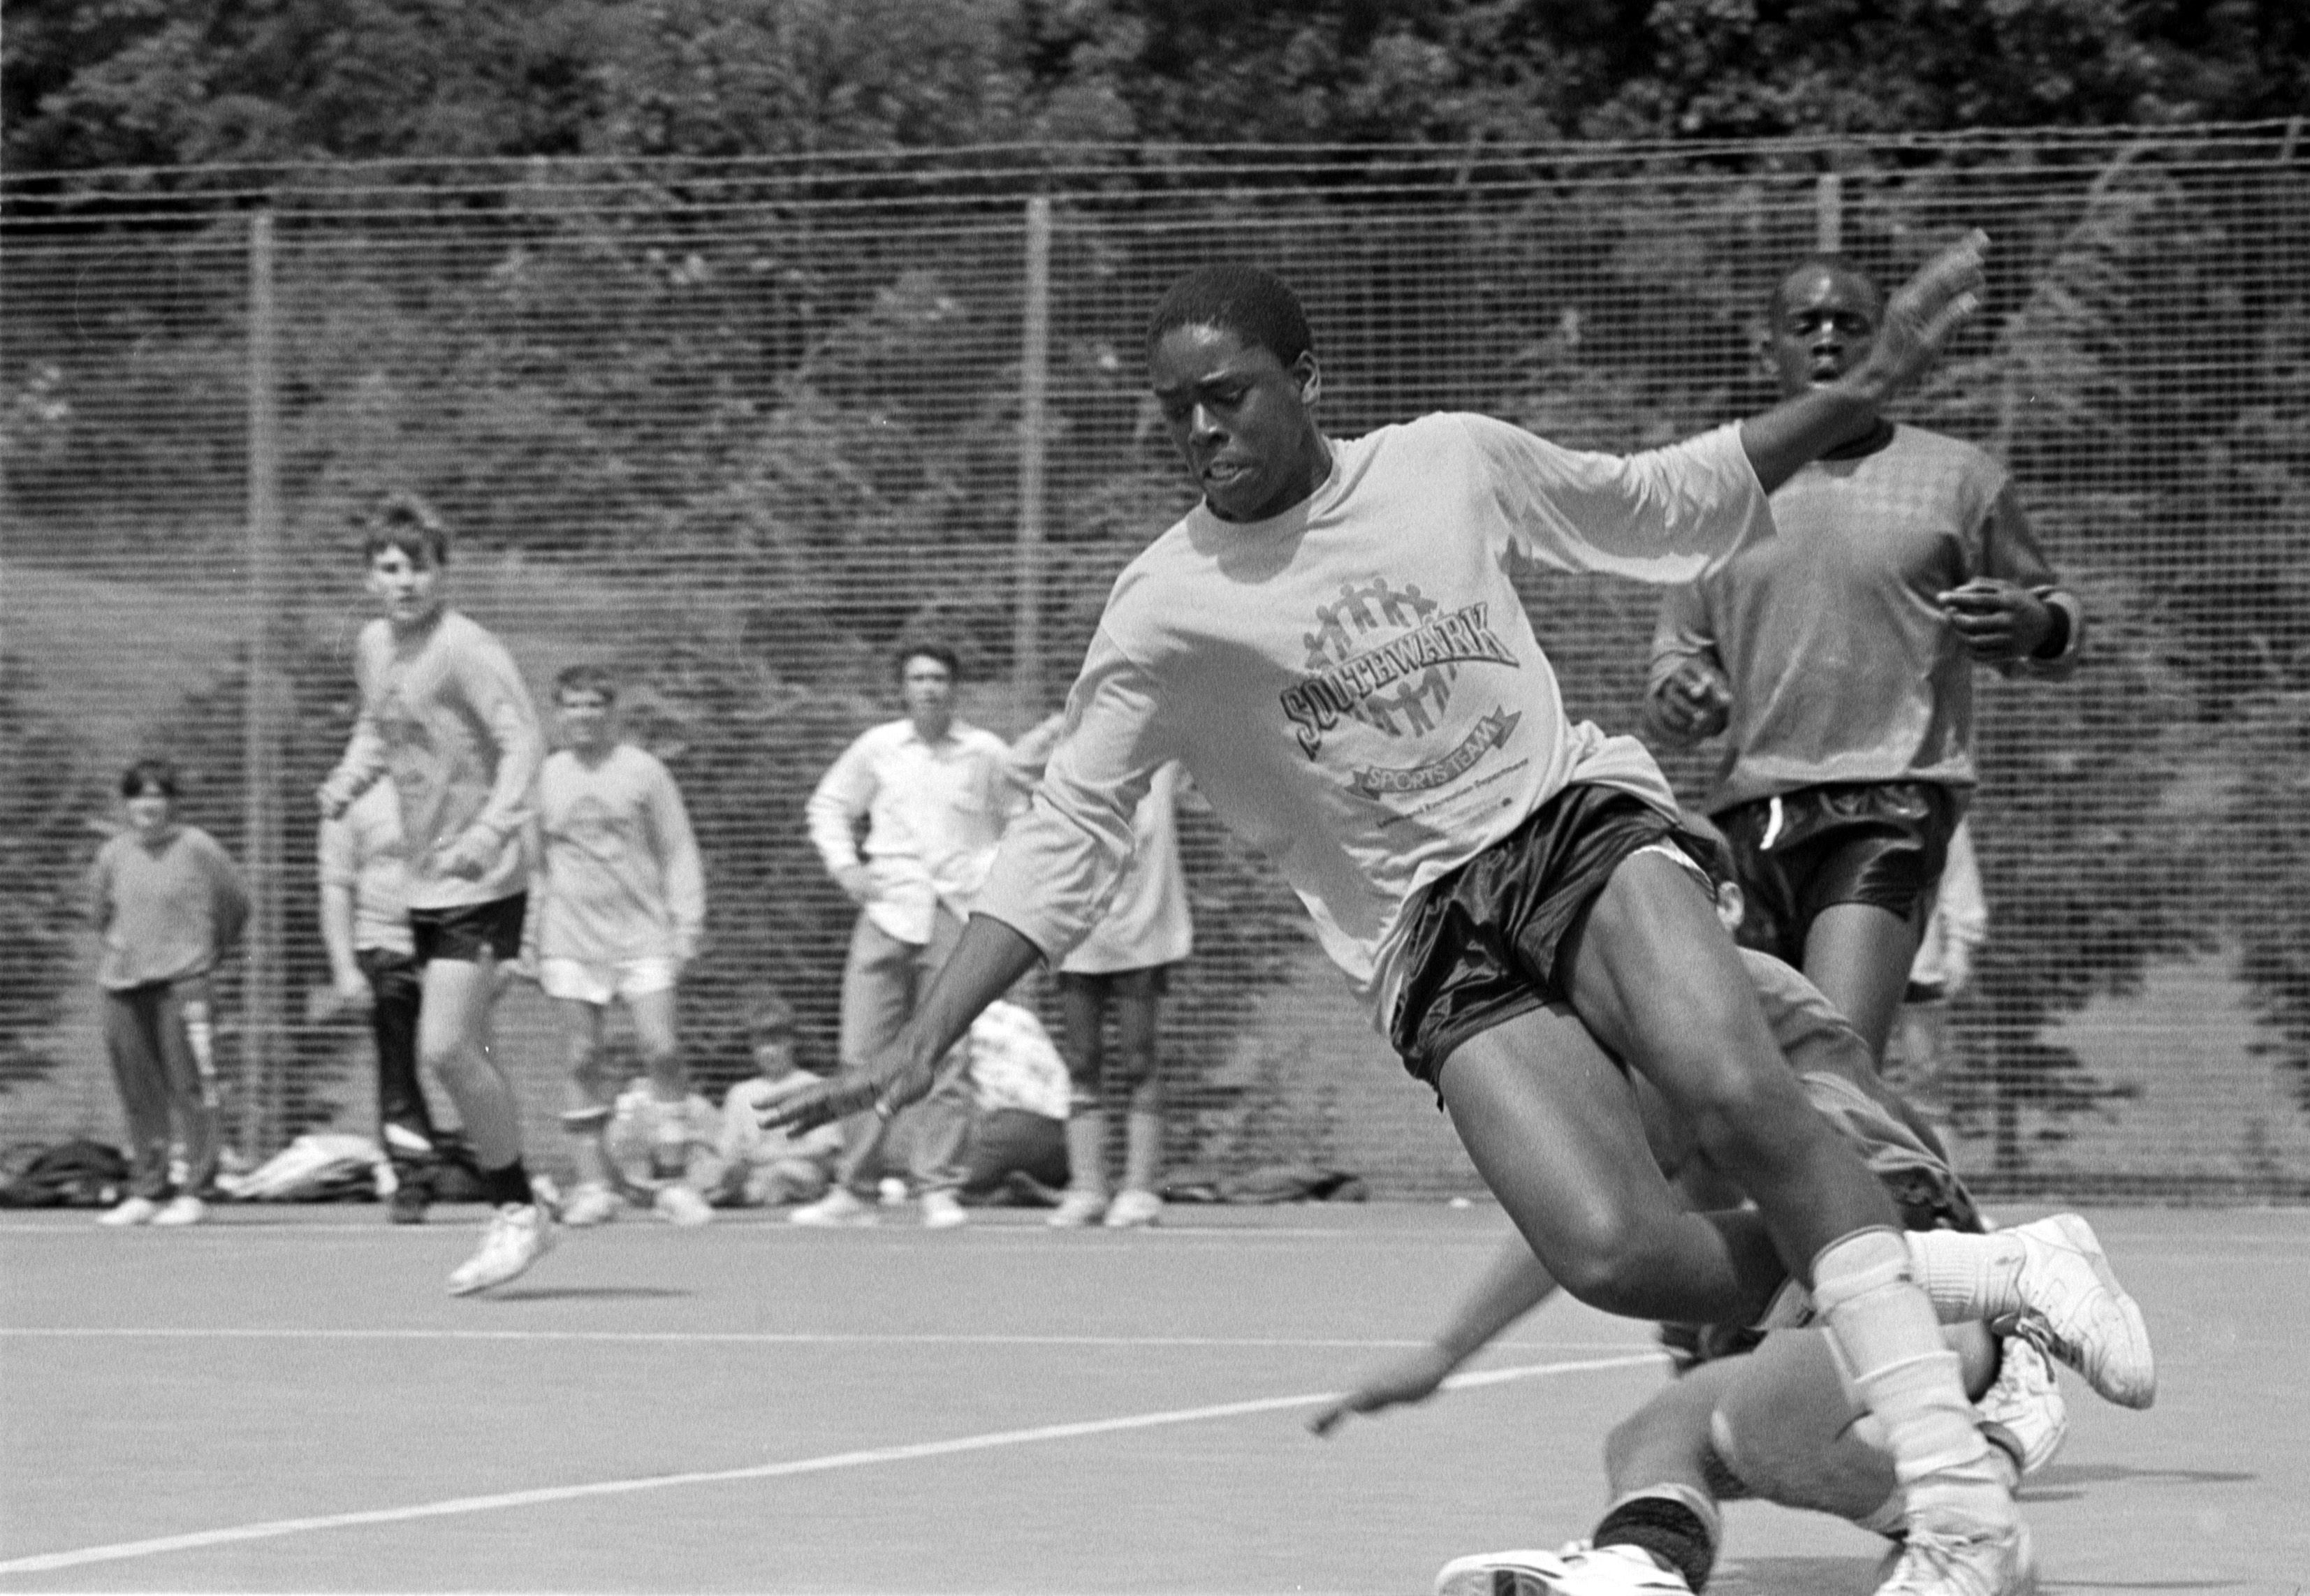 London_Youth_Games_1990_07_08_0035